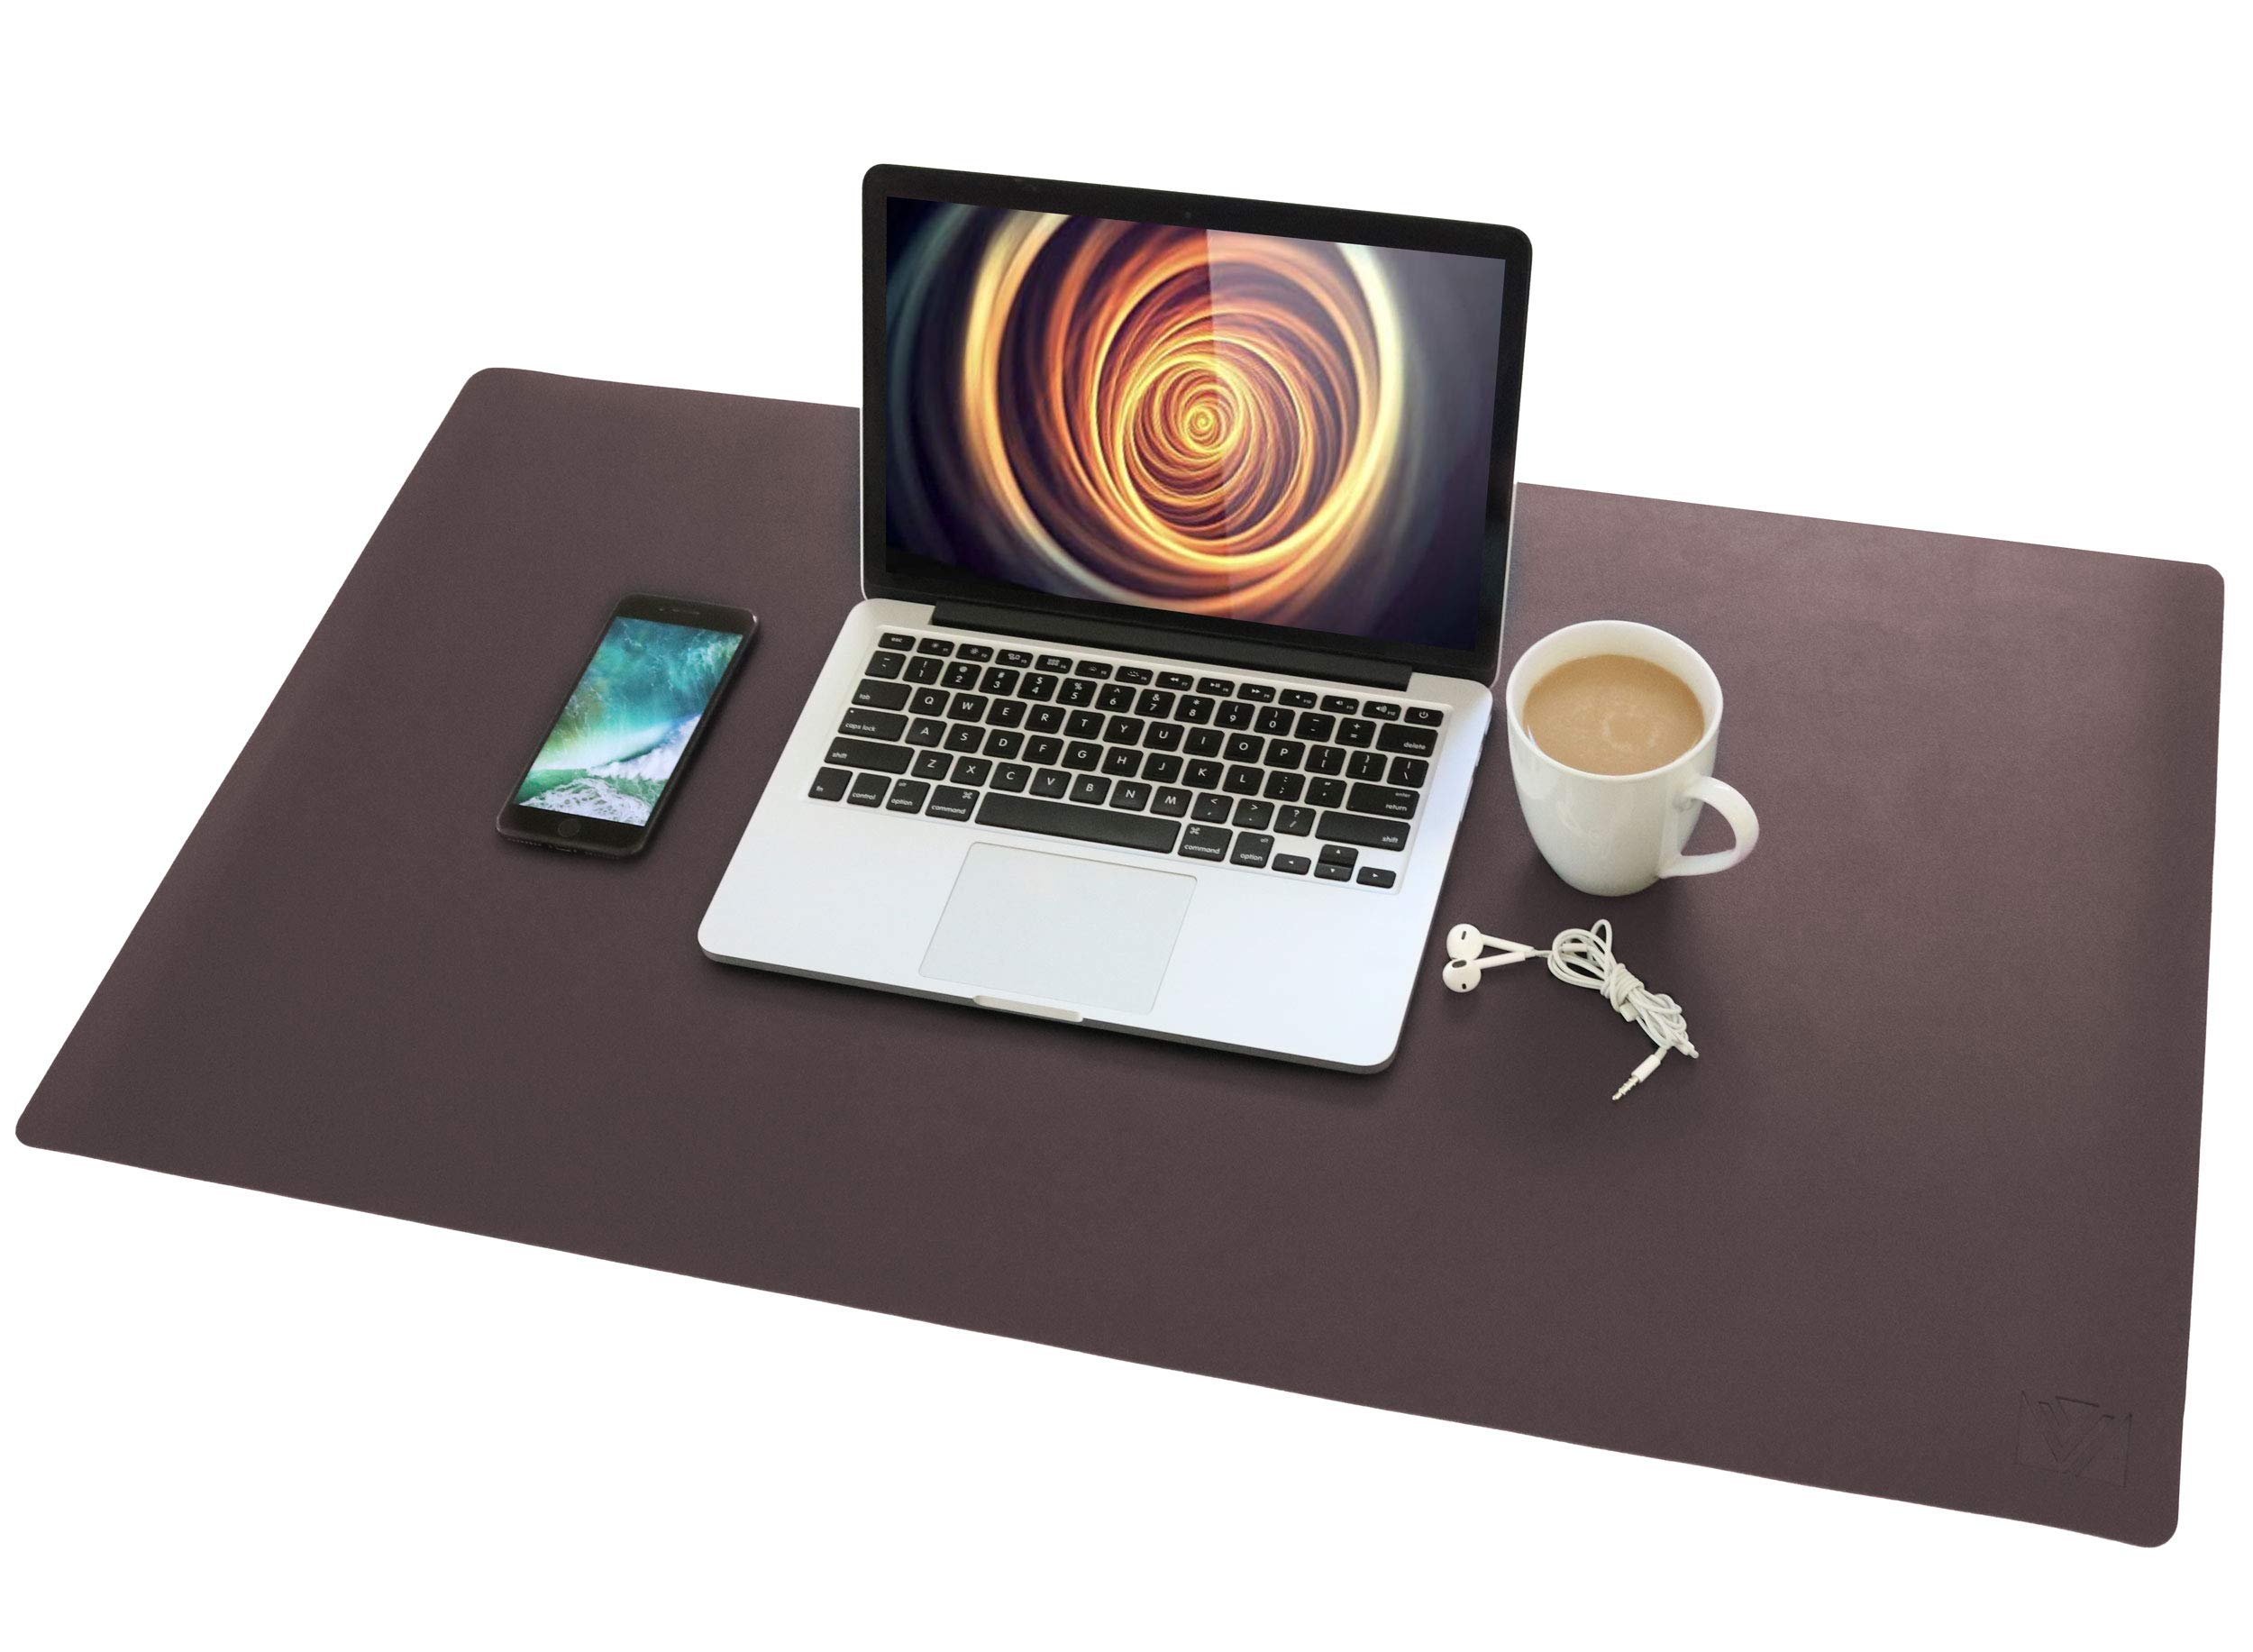 Leather Desk Pad 36''x 20'', VineCreations Office Desk Mat Blotter Waterproof Brown - Premium Quality - Smooth Mouse Writing Surface - Maximum Protection for Desk Office/Home by Vine Creations